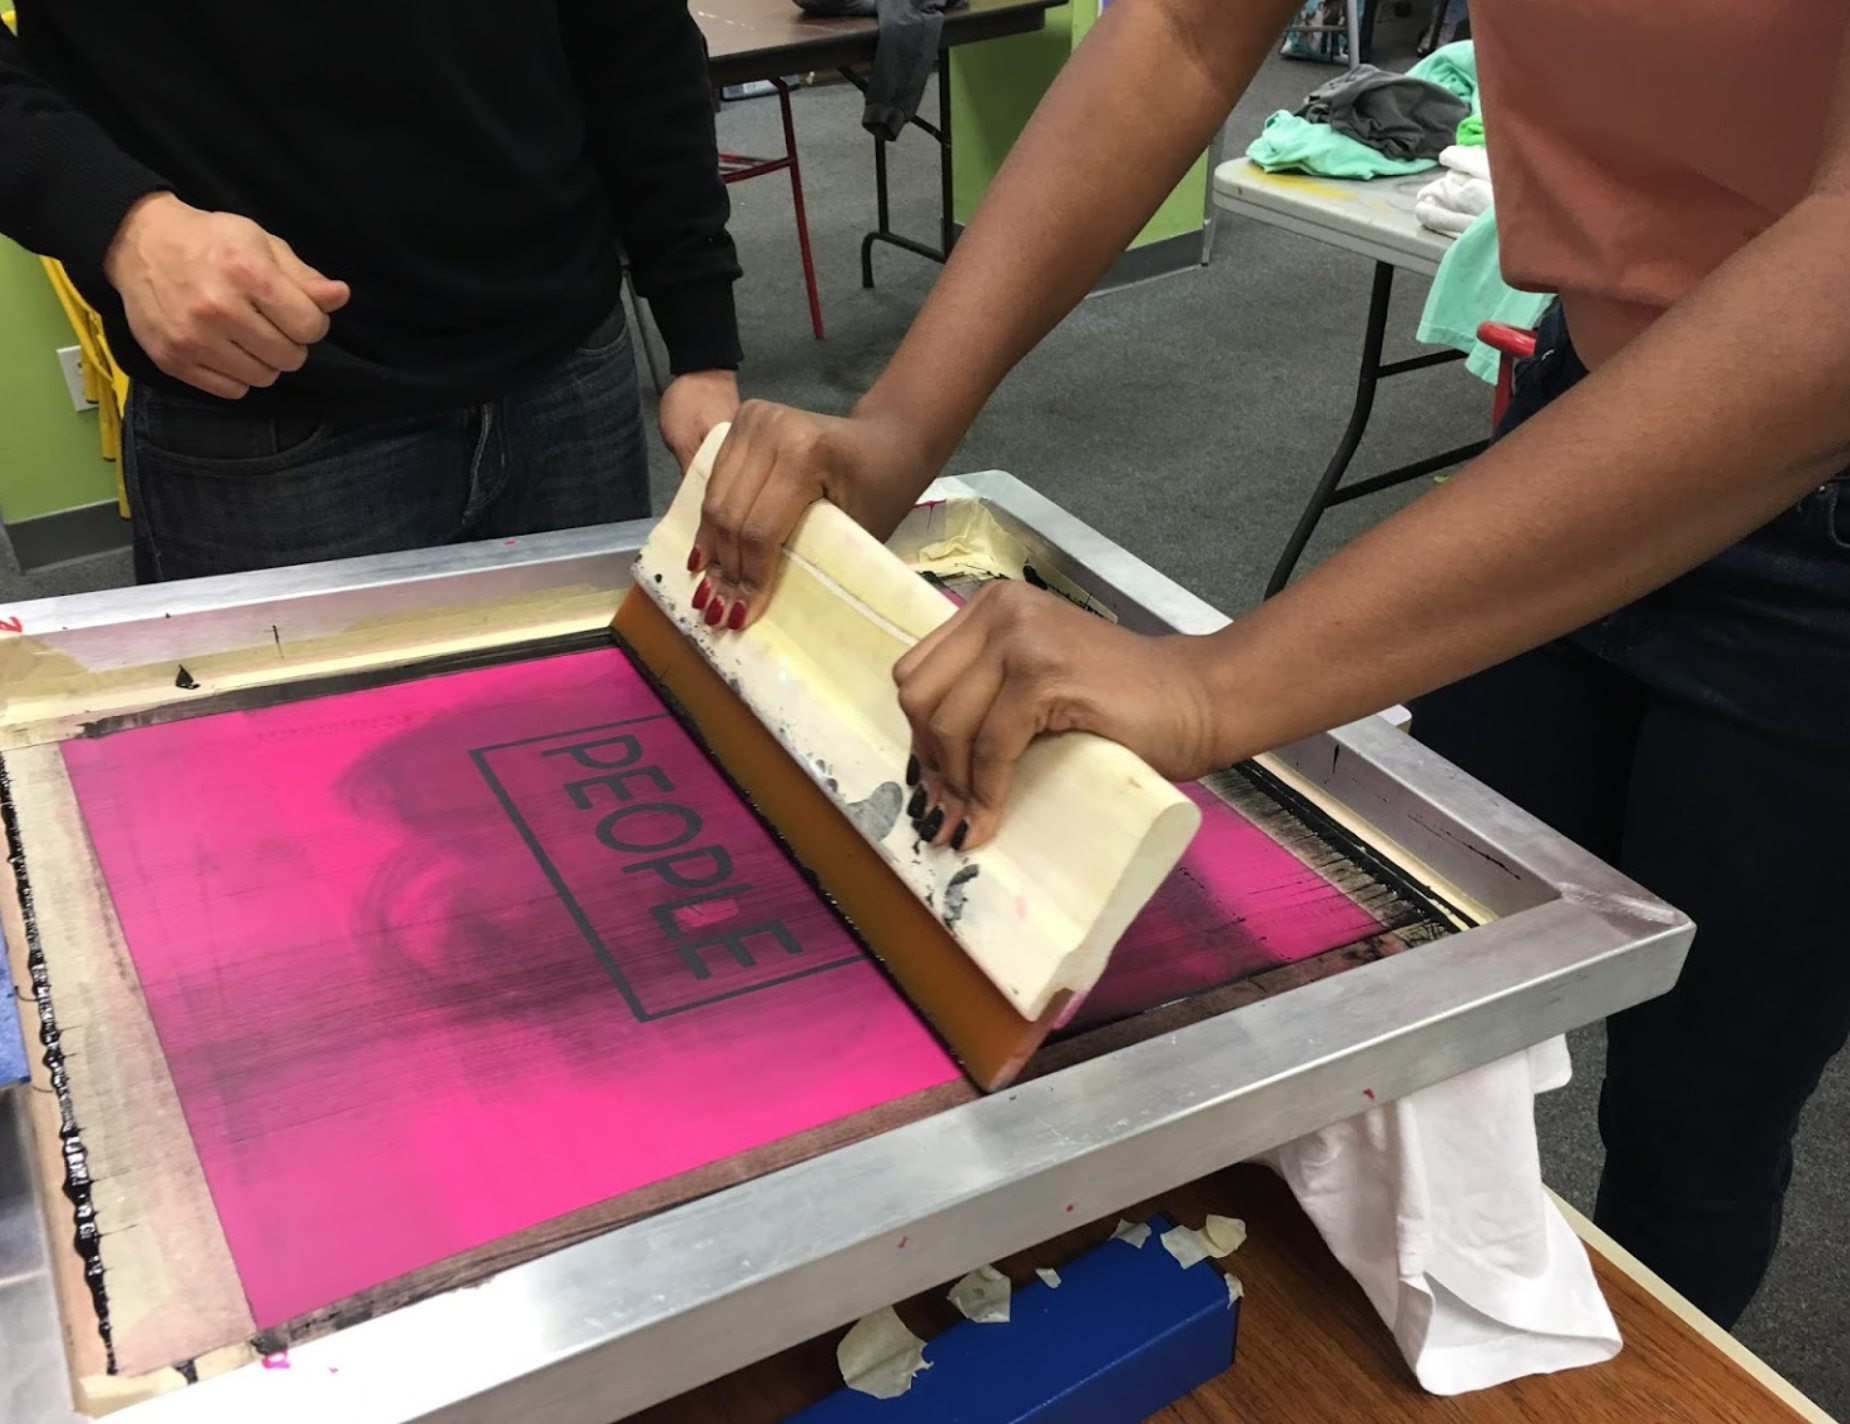 Community workshop run by Paper City Clothing Company